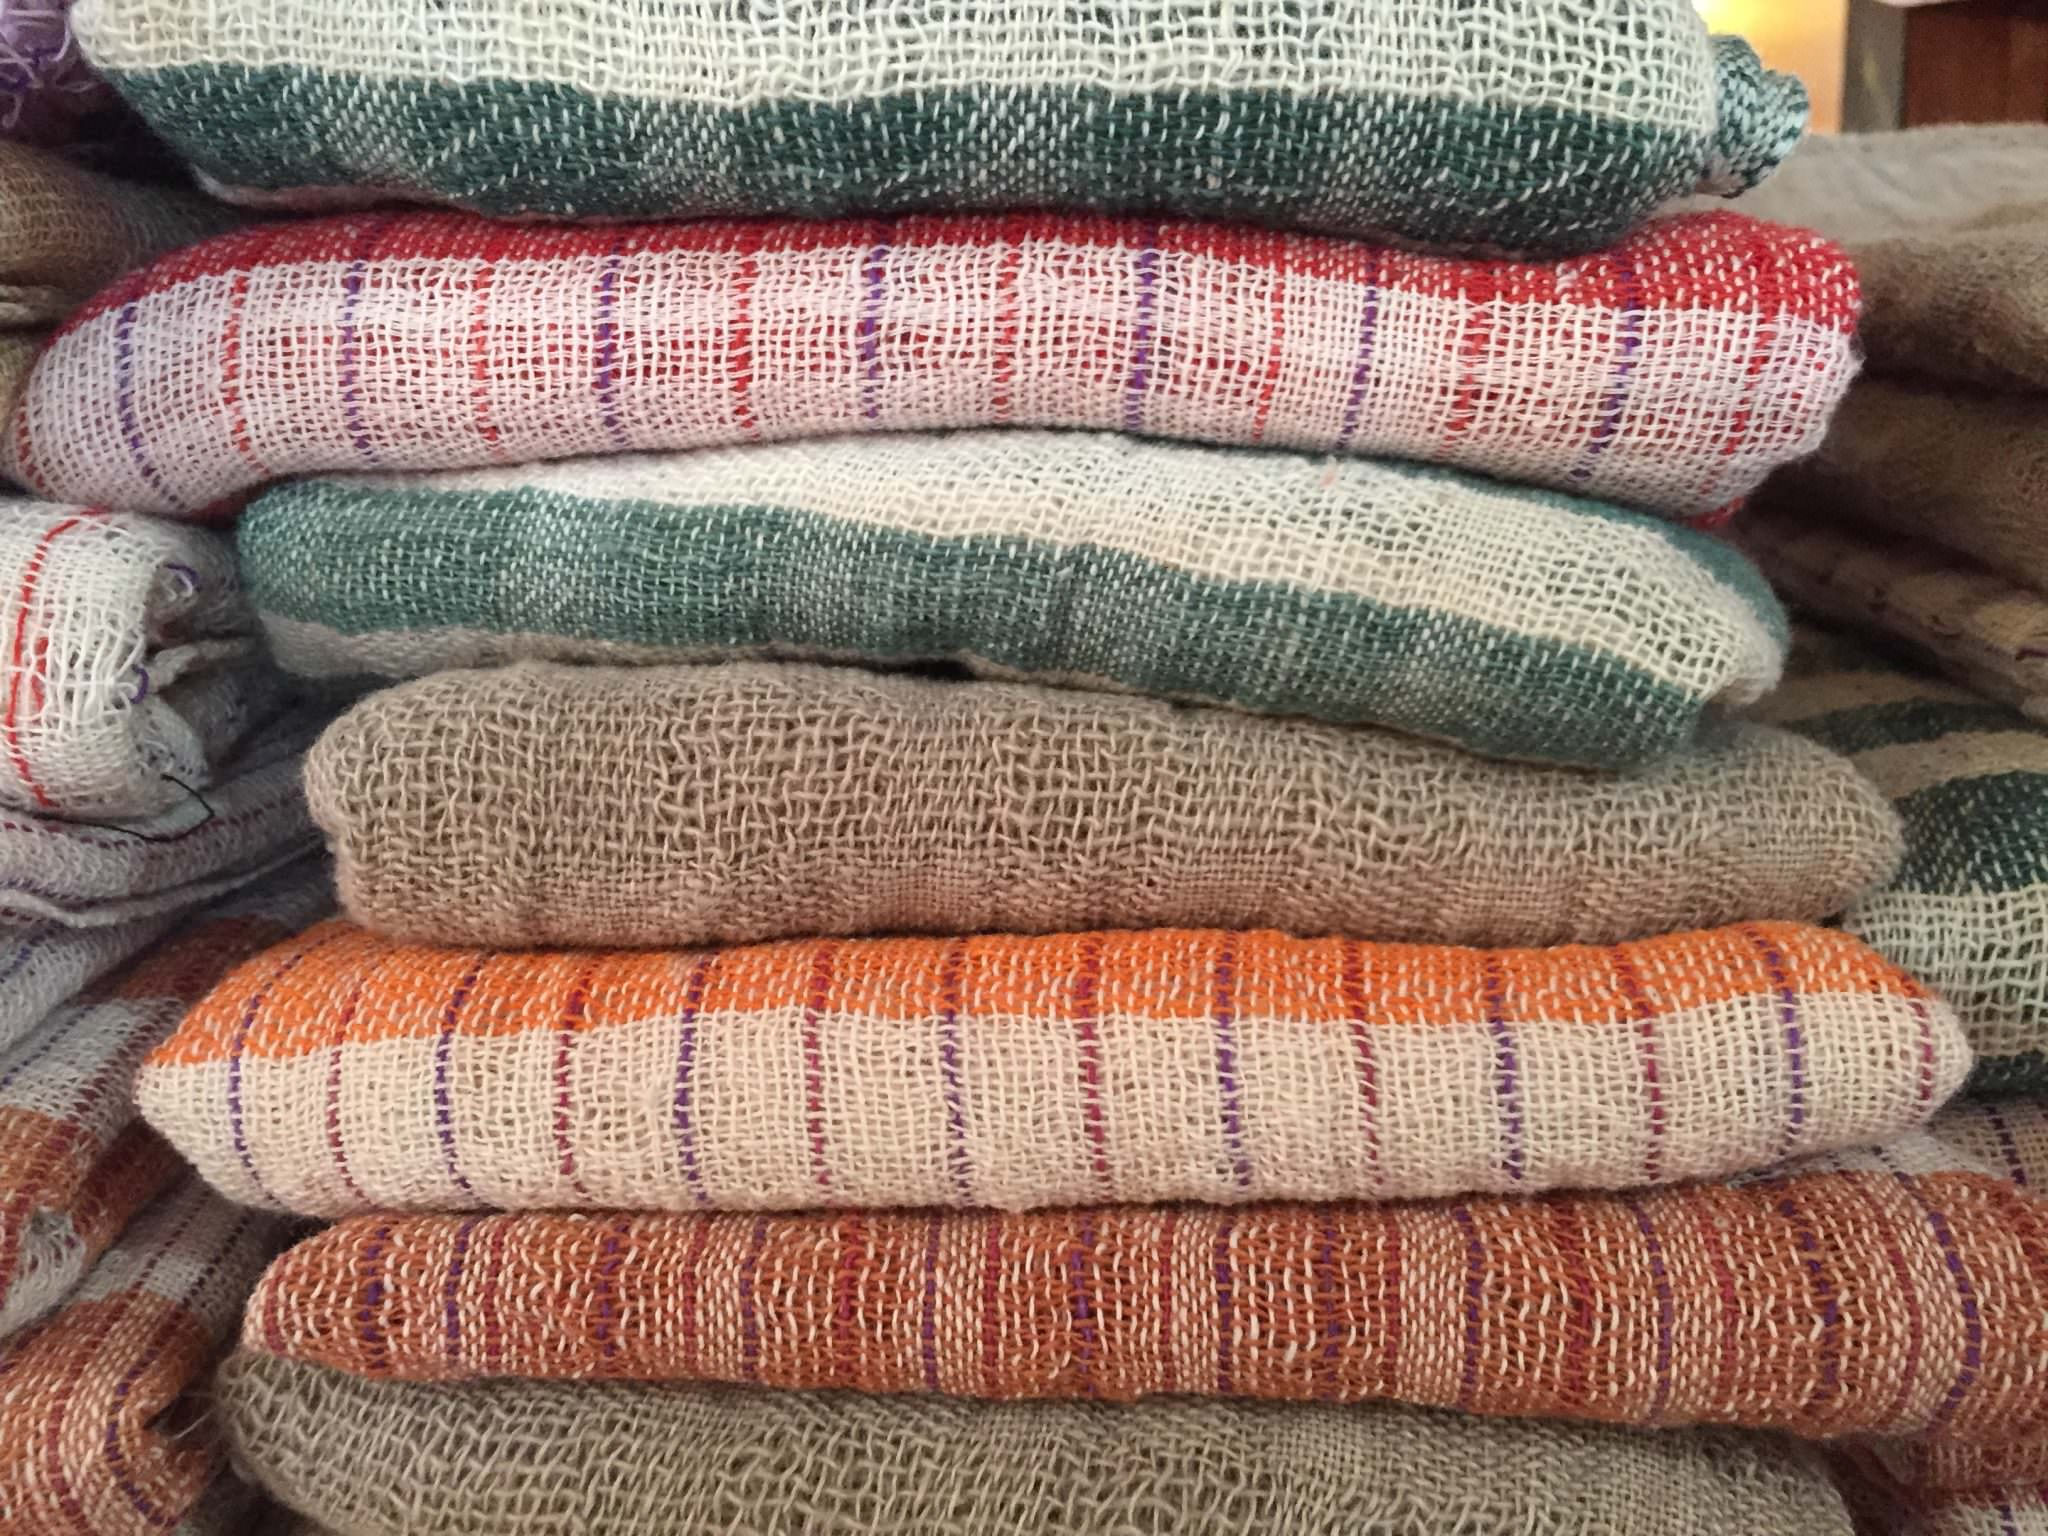 Row upon row upon row of unique scarves waiting for you to come buy one! © 2015 Gail Jessen